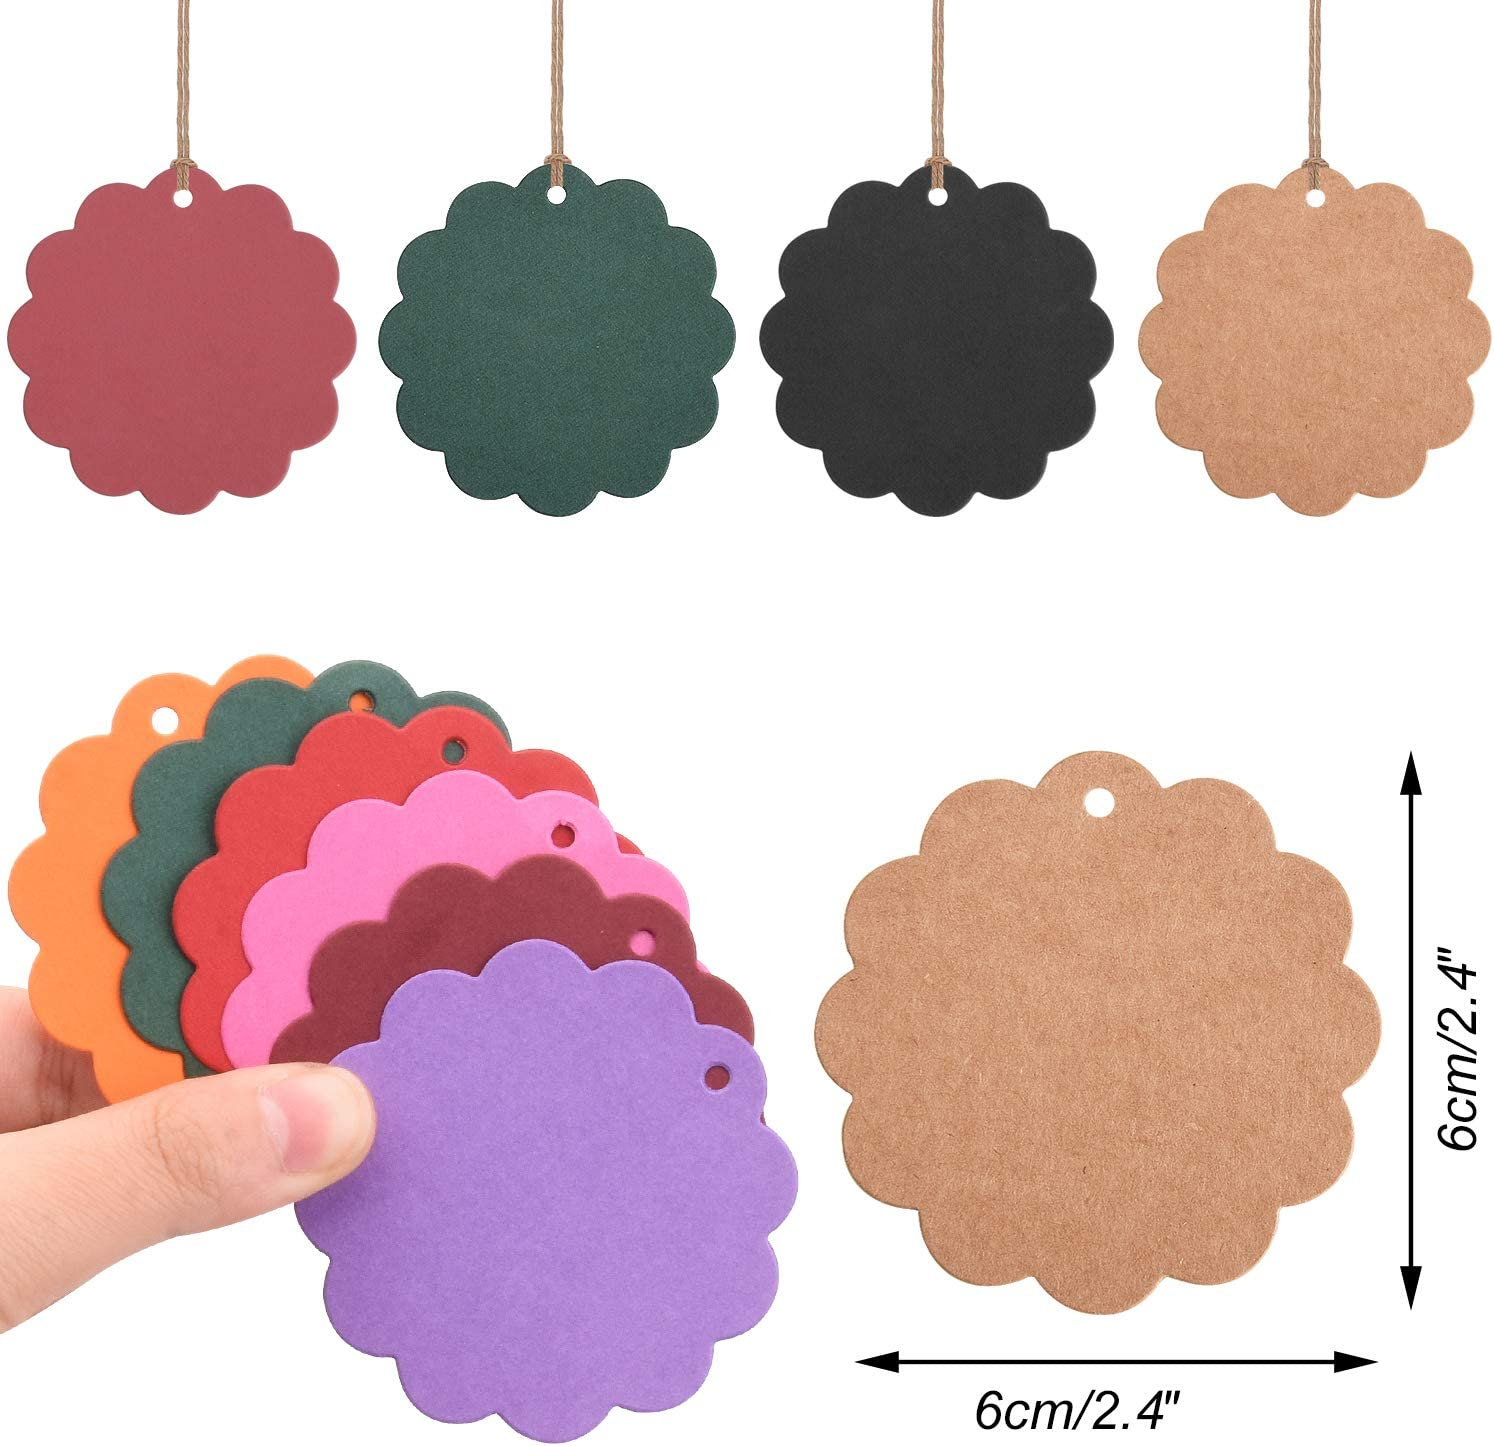 Udefineit 200PCS Colorful Kraft Gift Tags with String 20 Colors Star Shape Kraft Paper Hang Tags Blank Pricemarker Card Labels for Wedding Party Favors Gift Packing DIY Bookmark Sales Baking